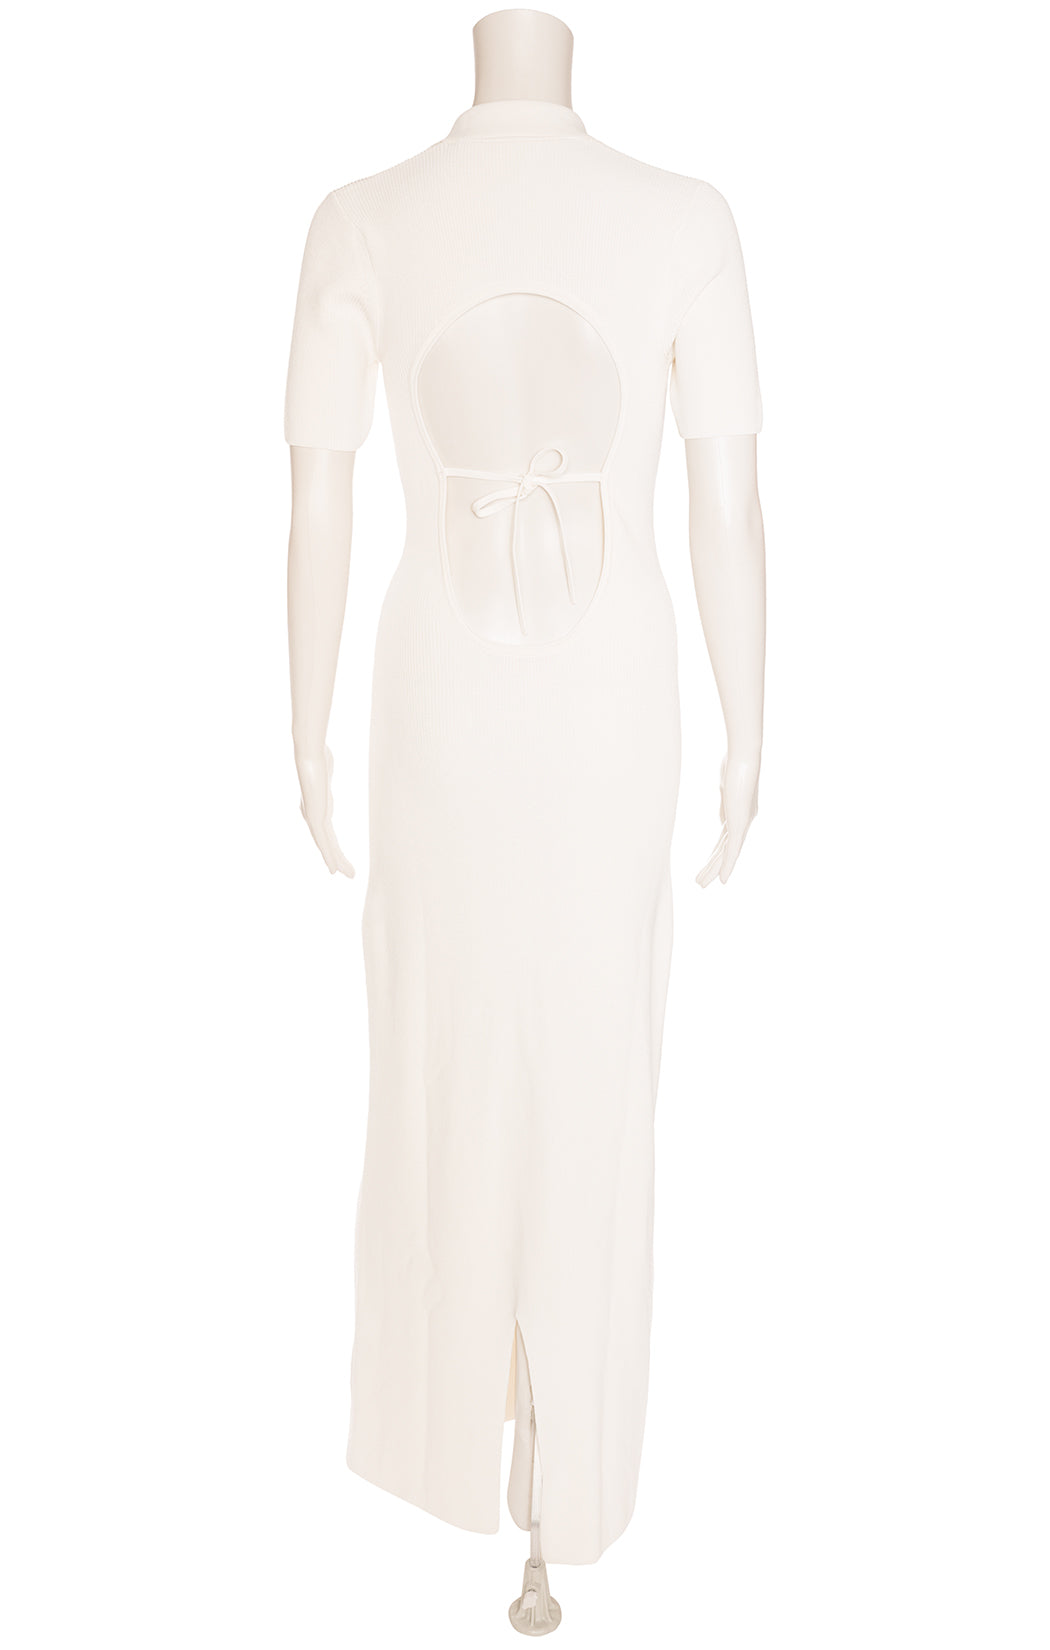 JACQUEMUS  Dress Size: FR 38 (comparable to US 4-6)